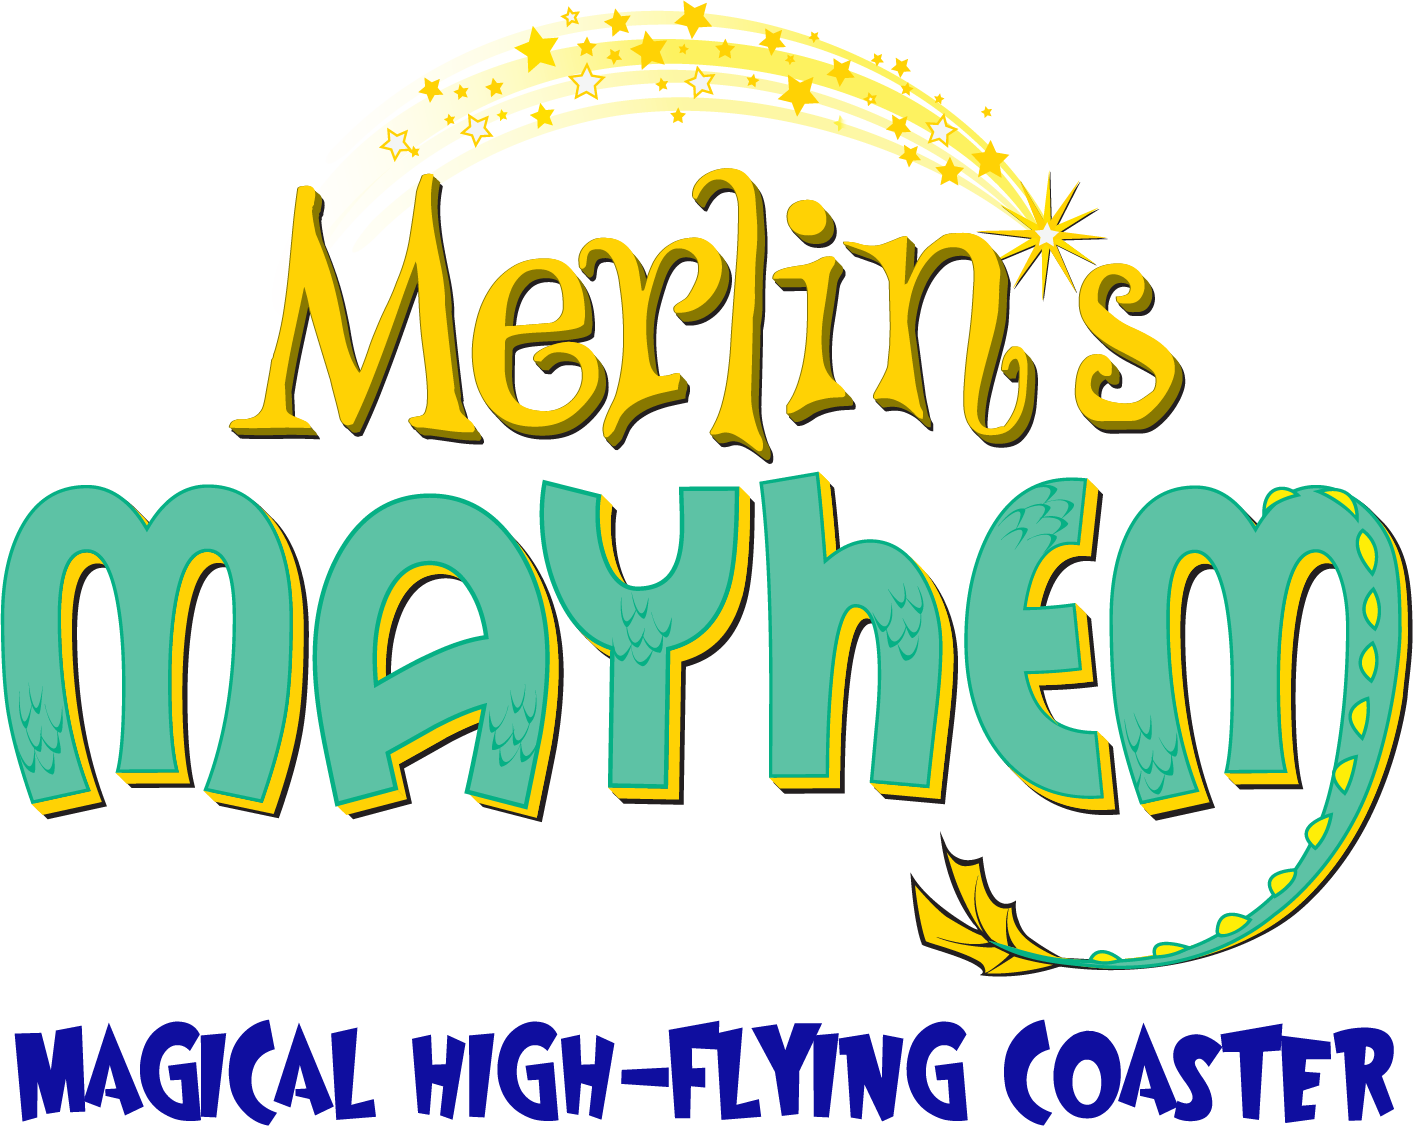 Merlin's  Mayhem Magical High-Flying Coaster